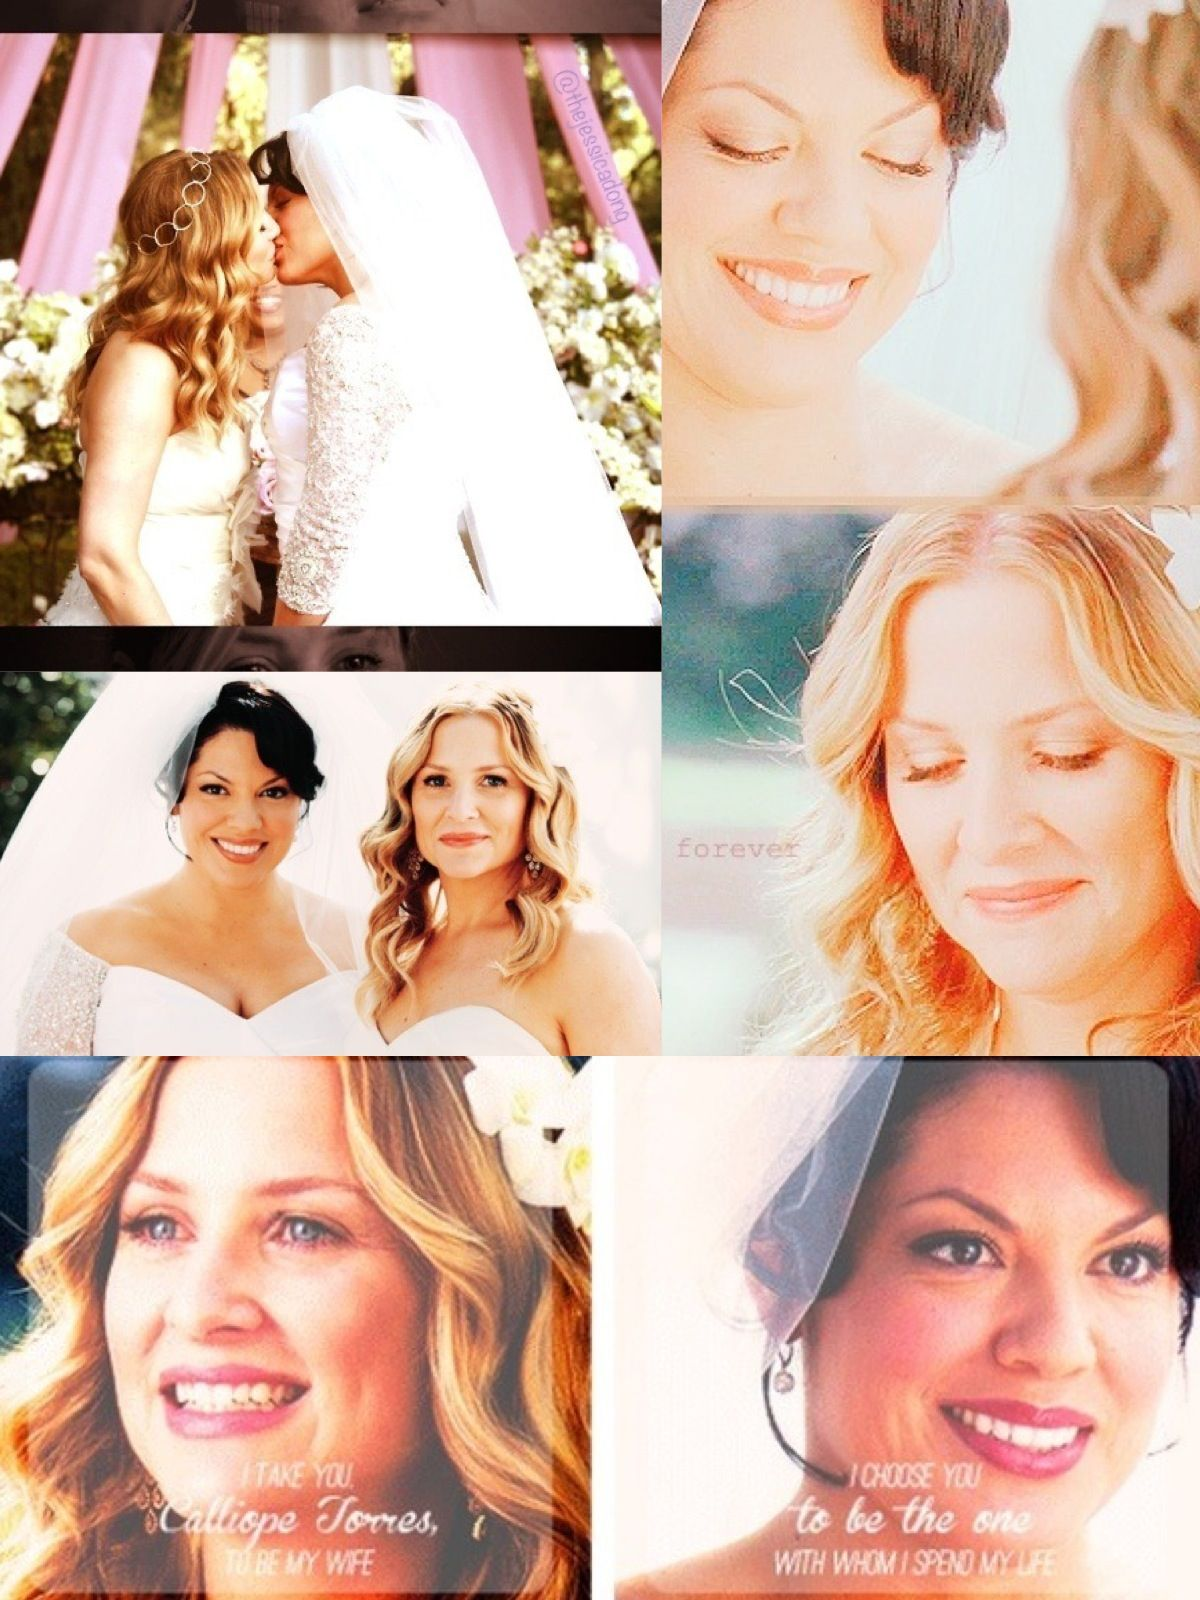 So Mad That They Had One Of The Most Beautiful Weddings And Relationships On The Show And Then Satan I Me Greys Anatomy Callie Greys Anatomy Lexie Grey